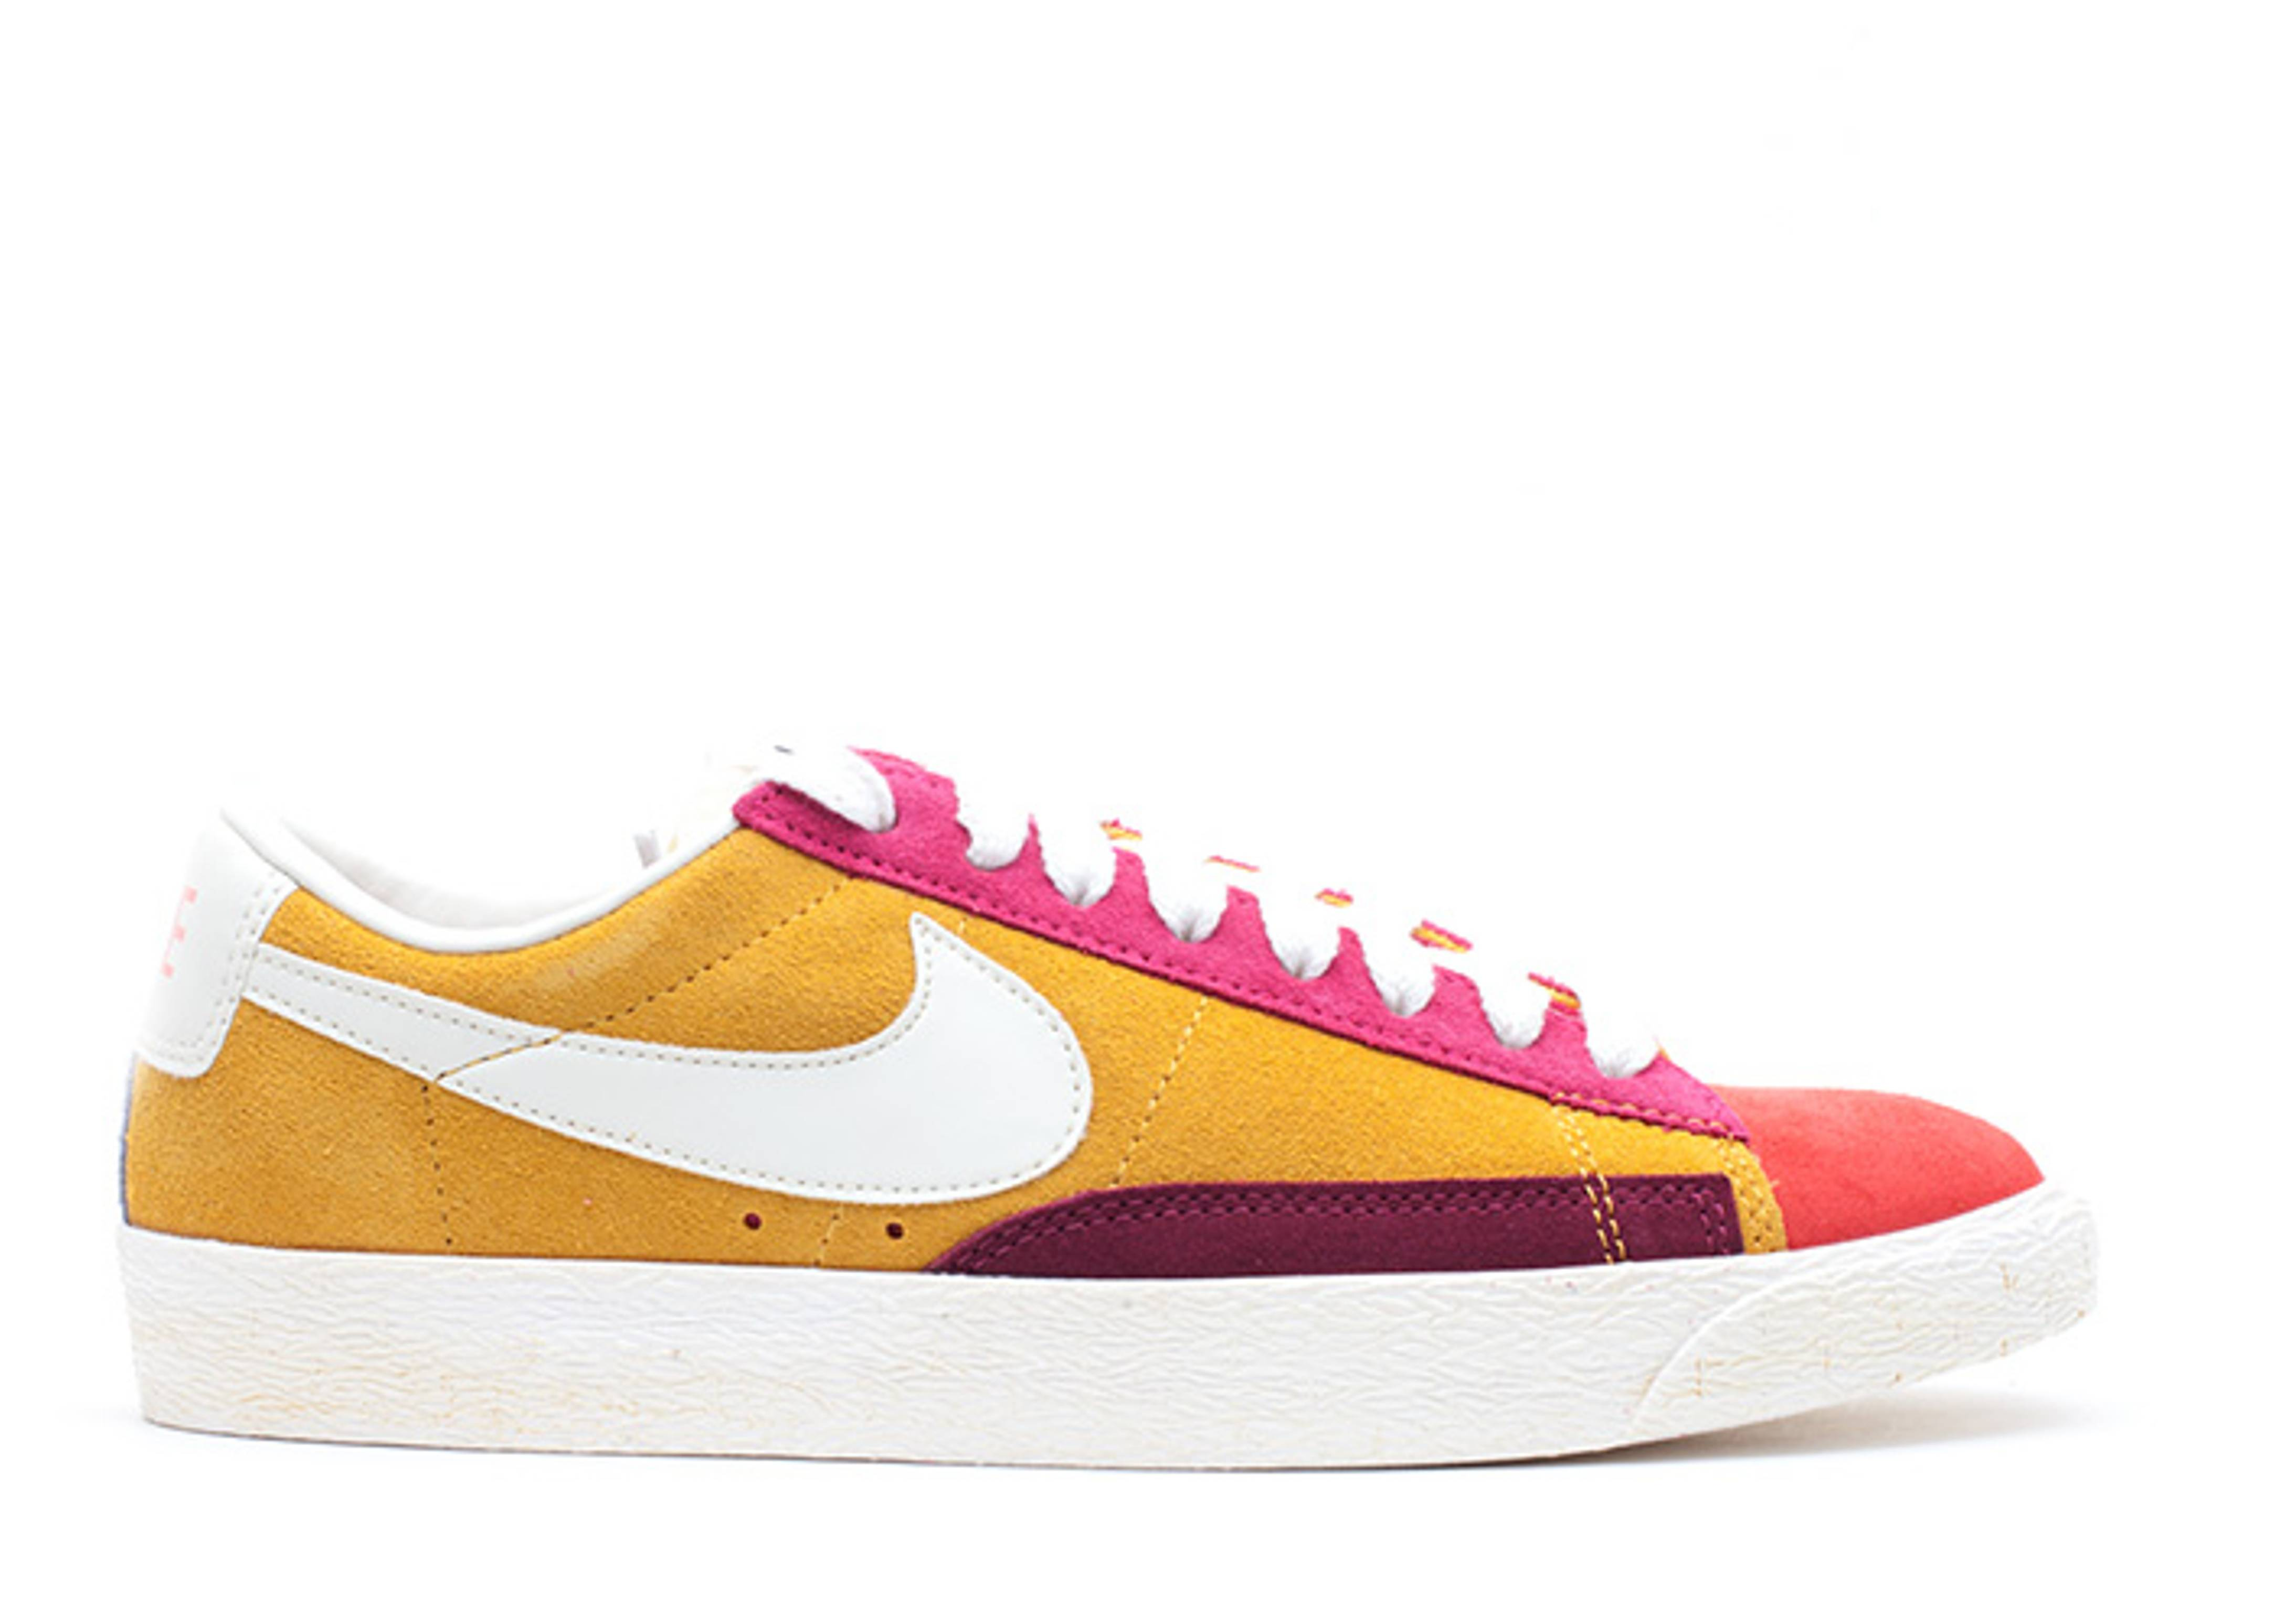 blazer low vntg qs